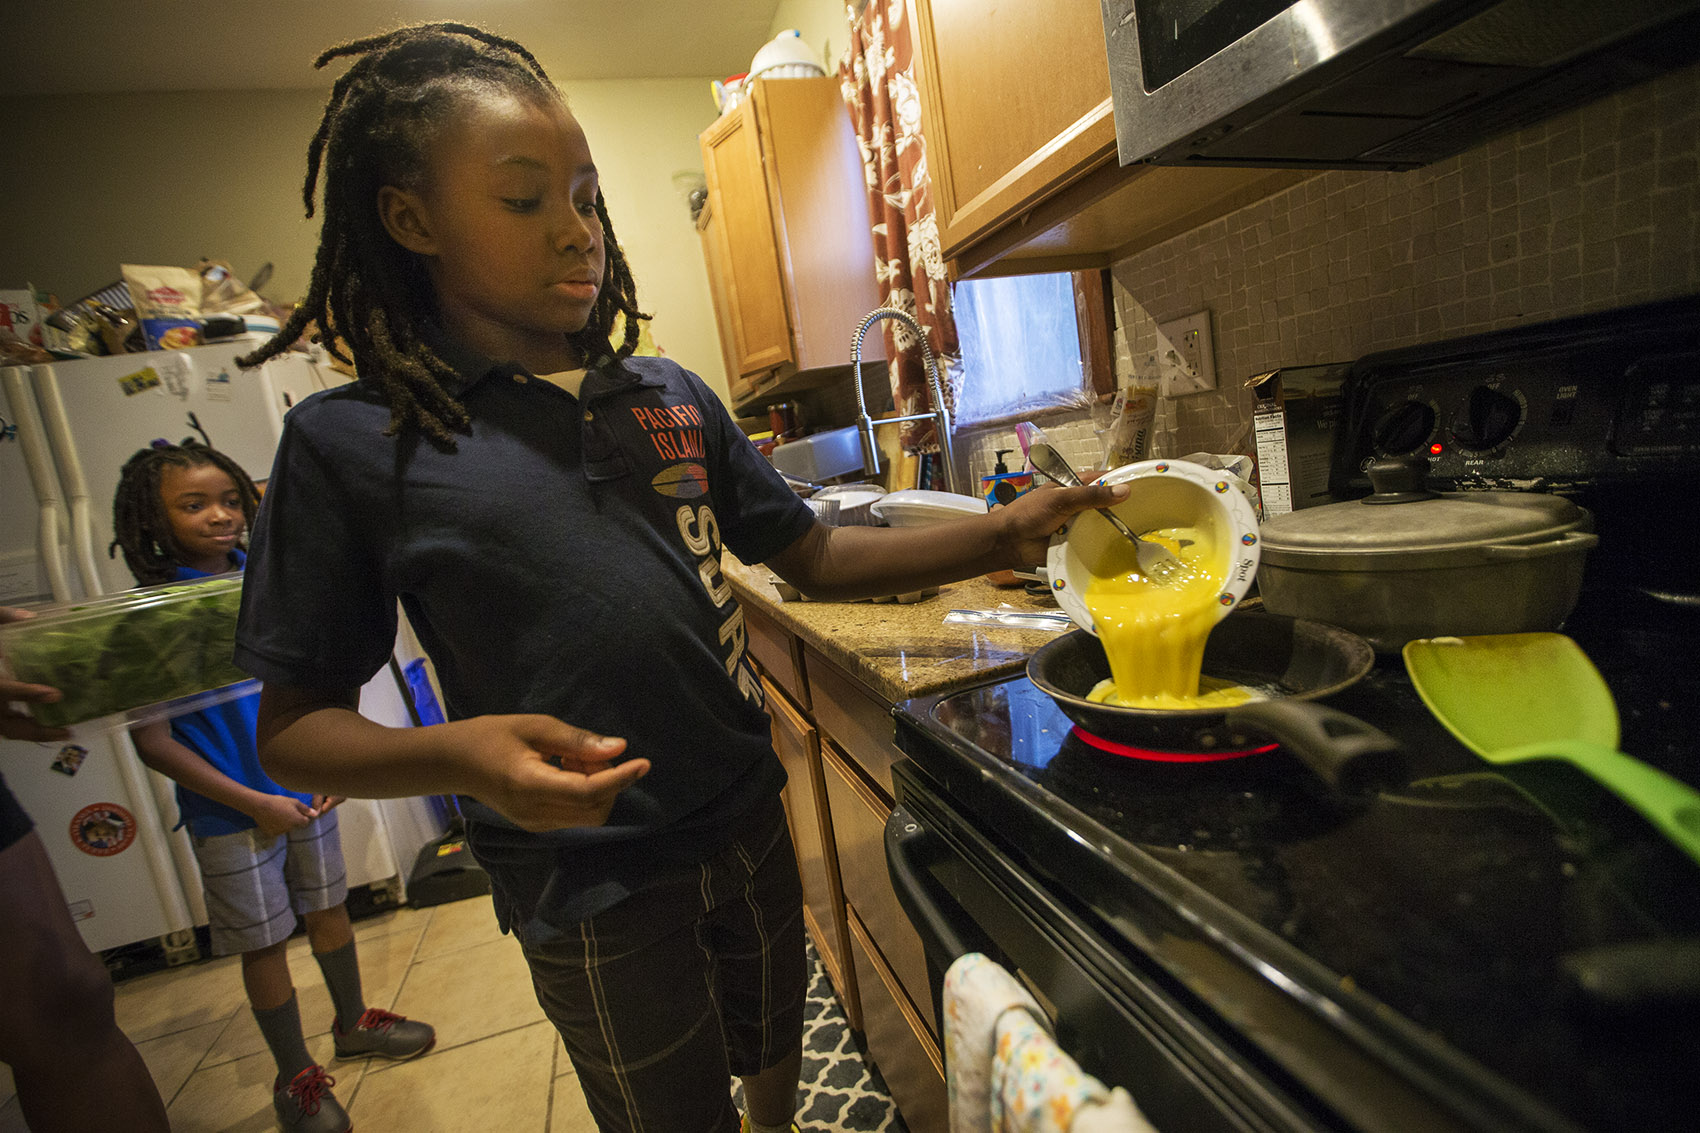 To start the day, Stephen Hilliare makes scrambled eggs for the whole family.(Jesse Costa/WBUR)